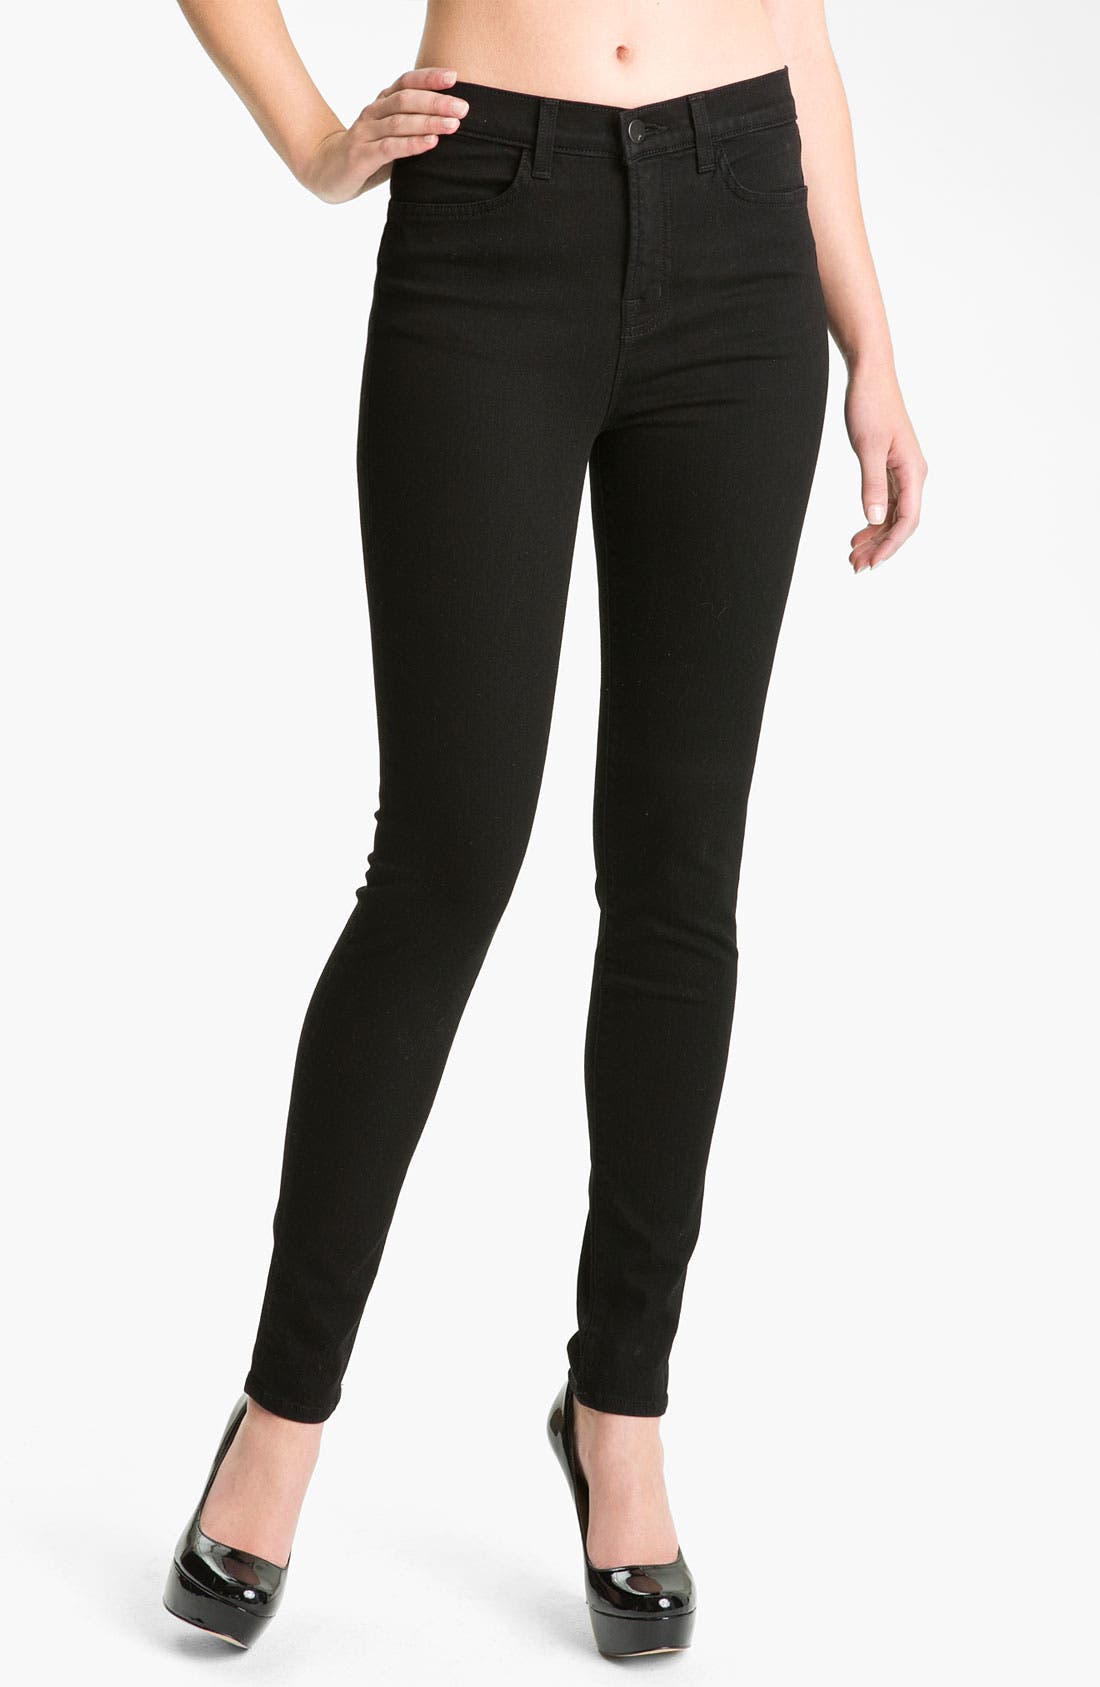 Main Image - J Brand '2311 Maria' High Rise Skinny Stretch Jeans (Hewson Wash)